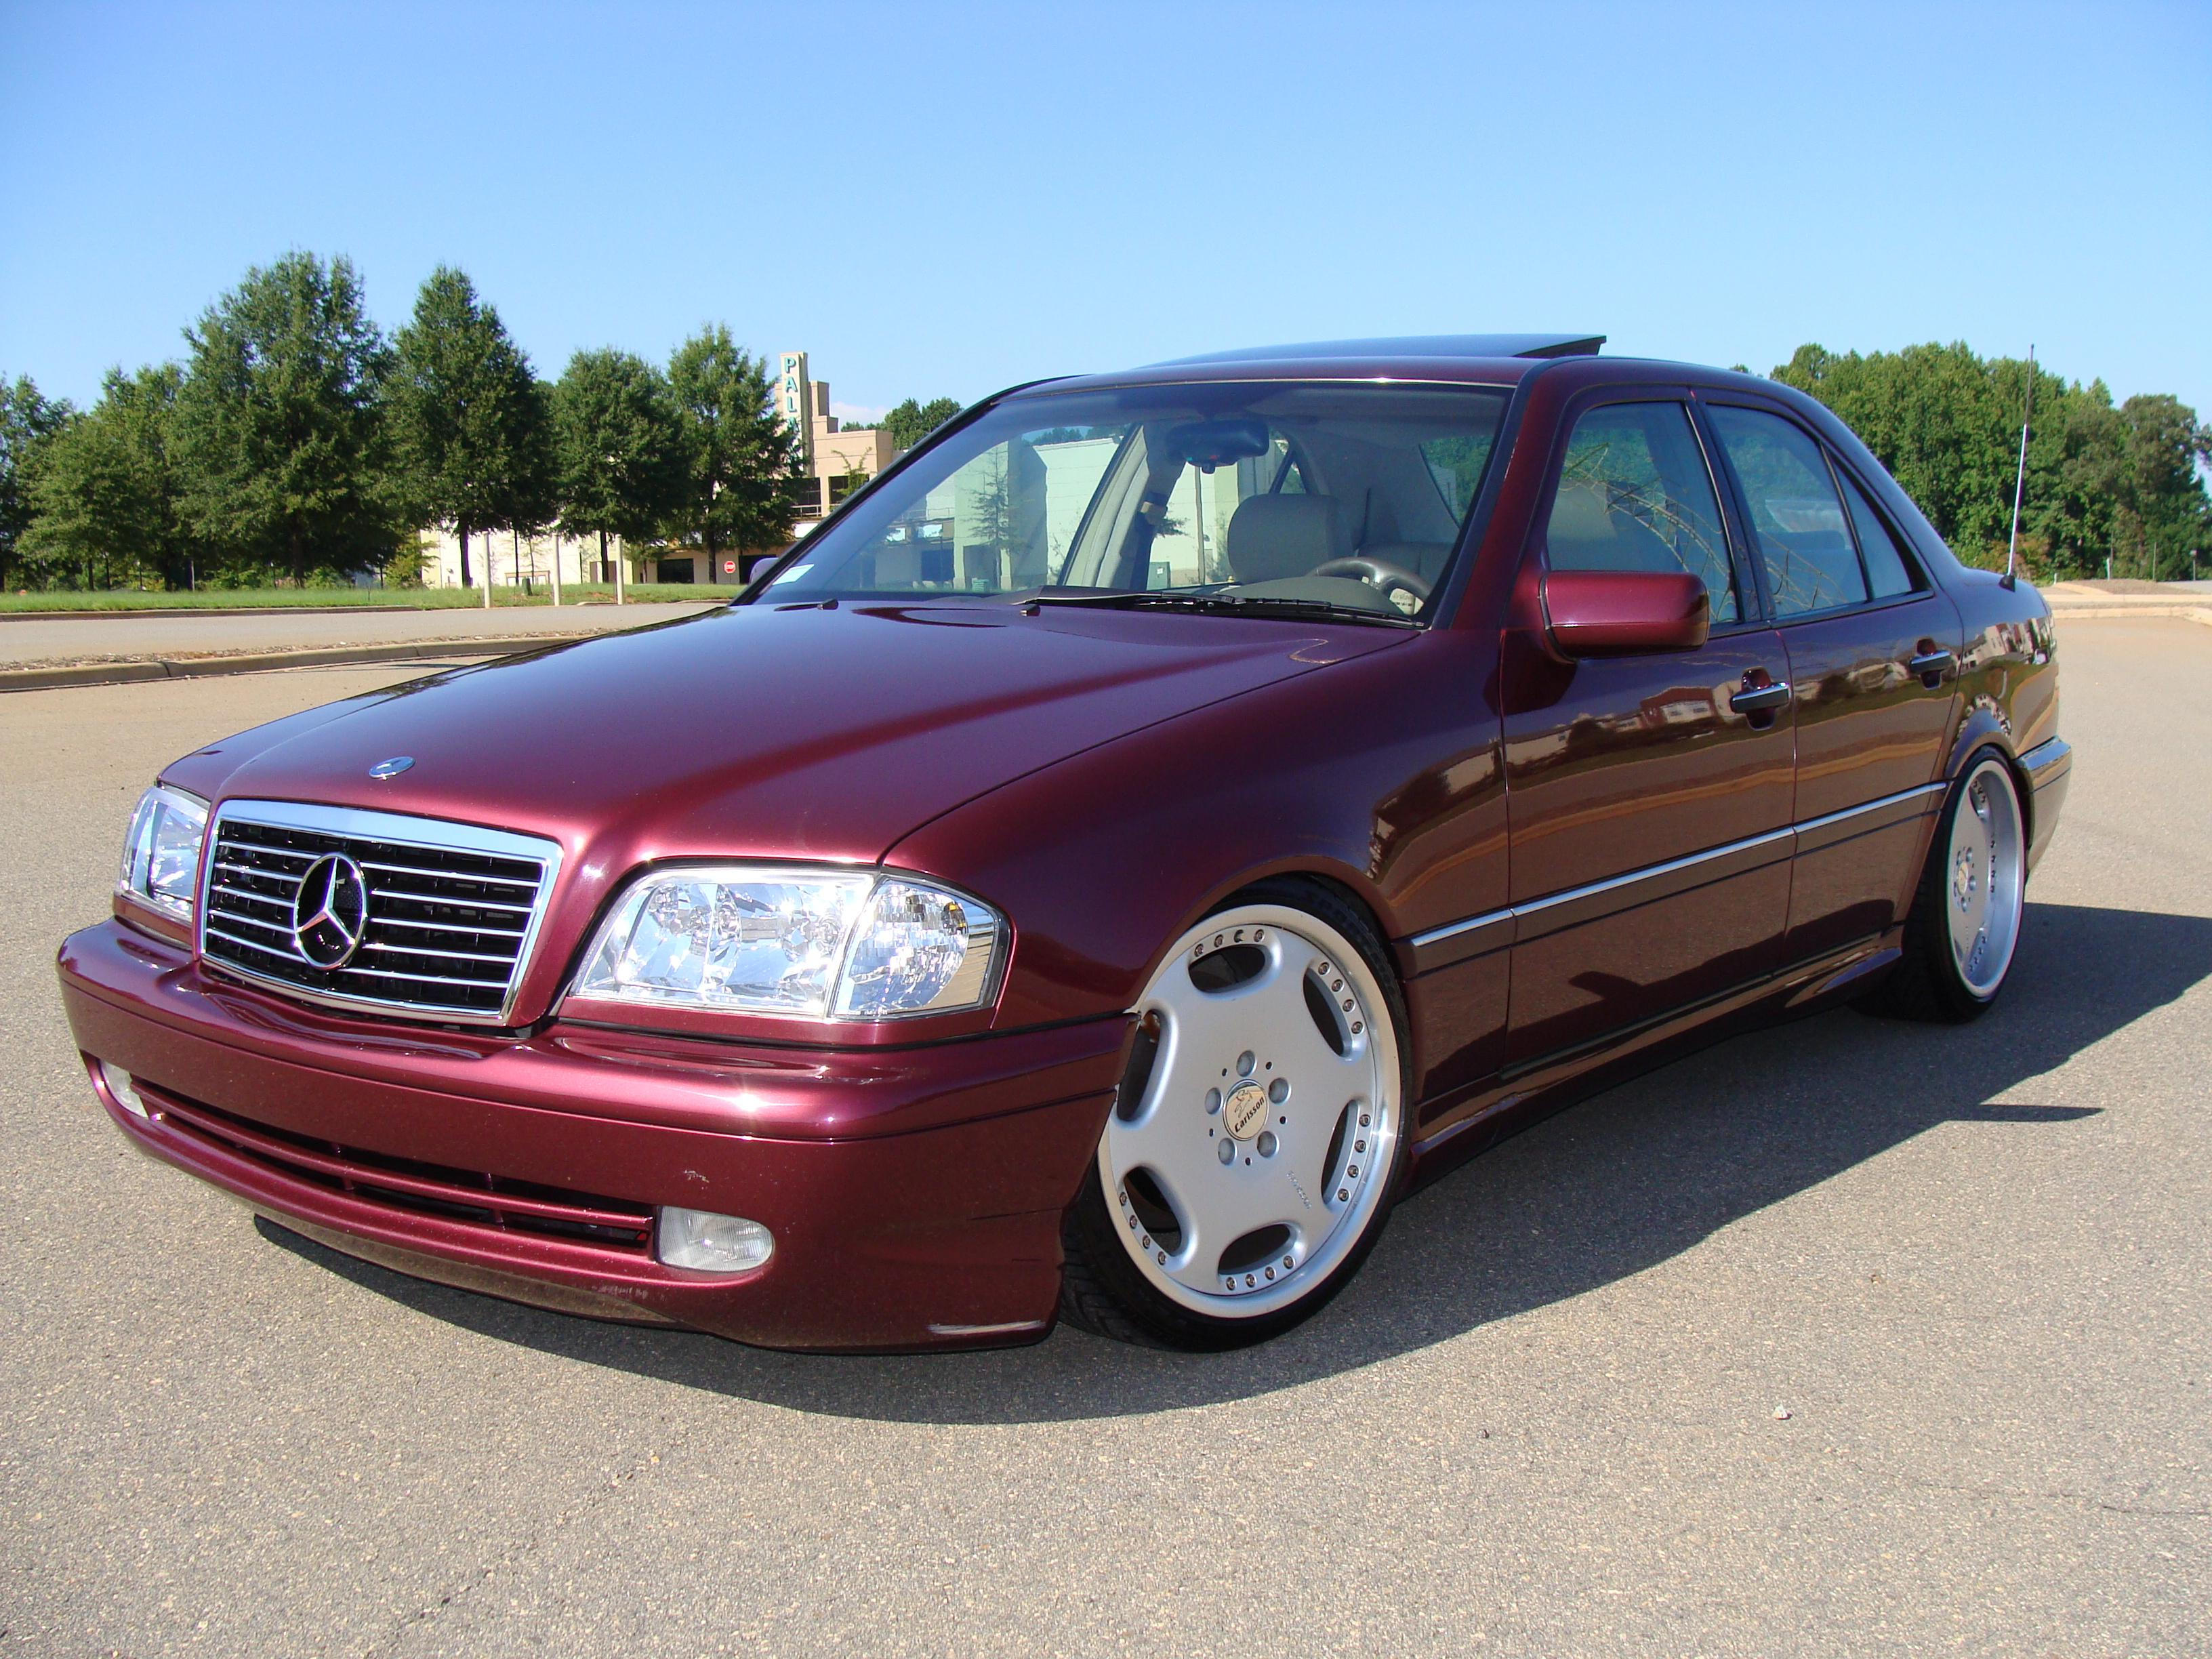 Rasputia 1996 mercedes benz c classc220 sedan 4d specs for 1996 mercedes benz c class